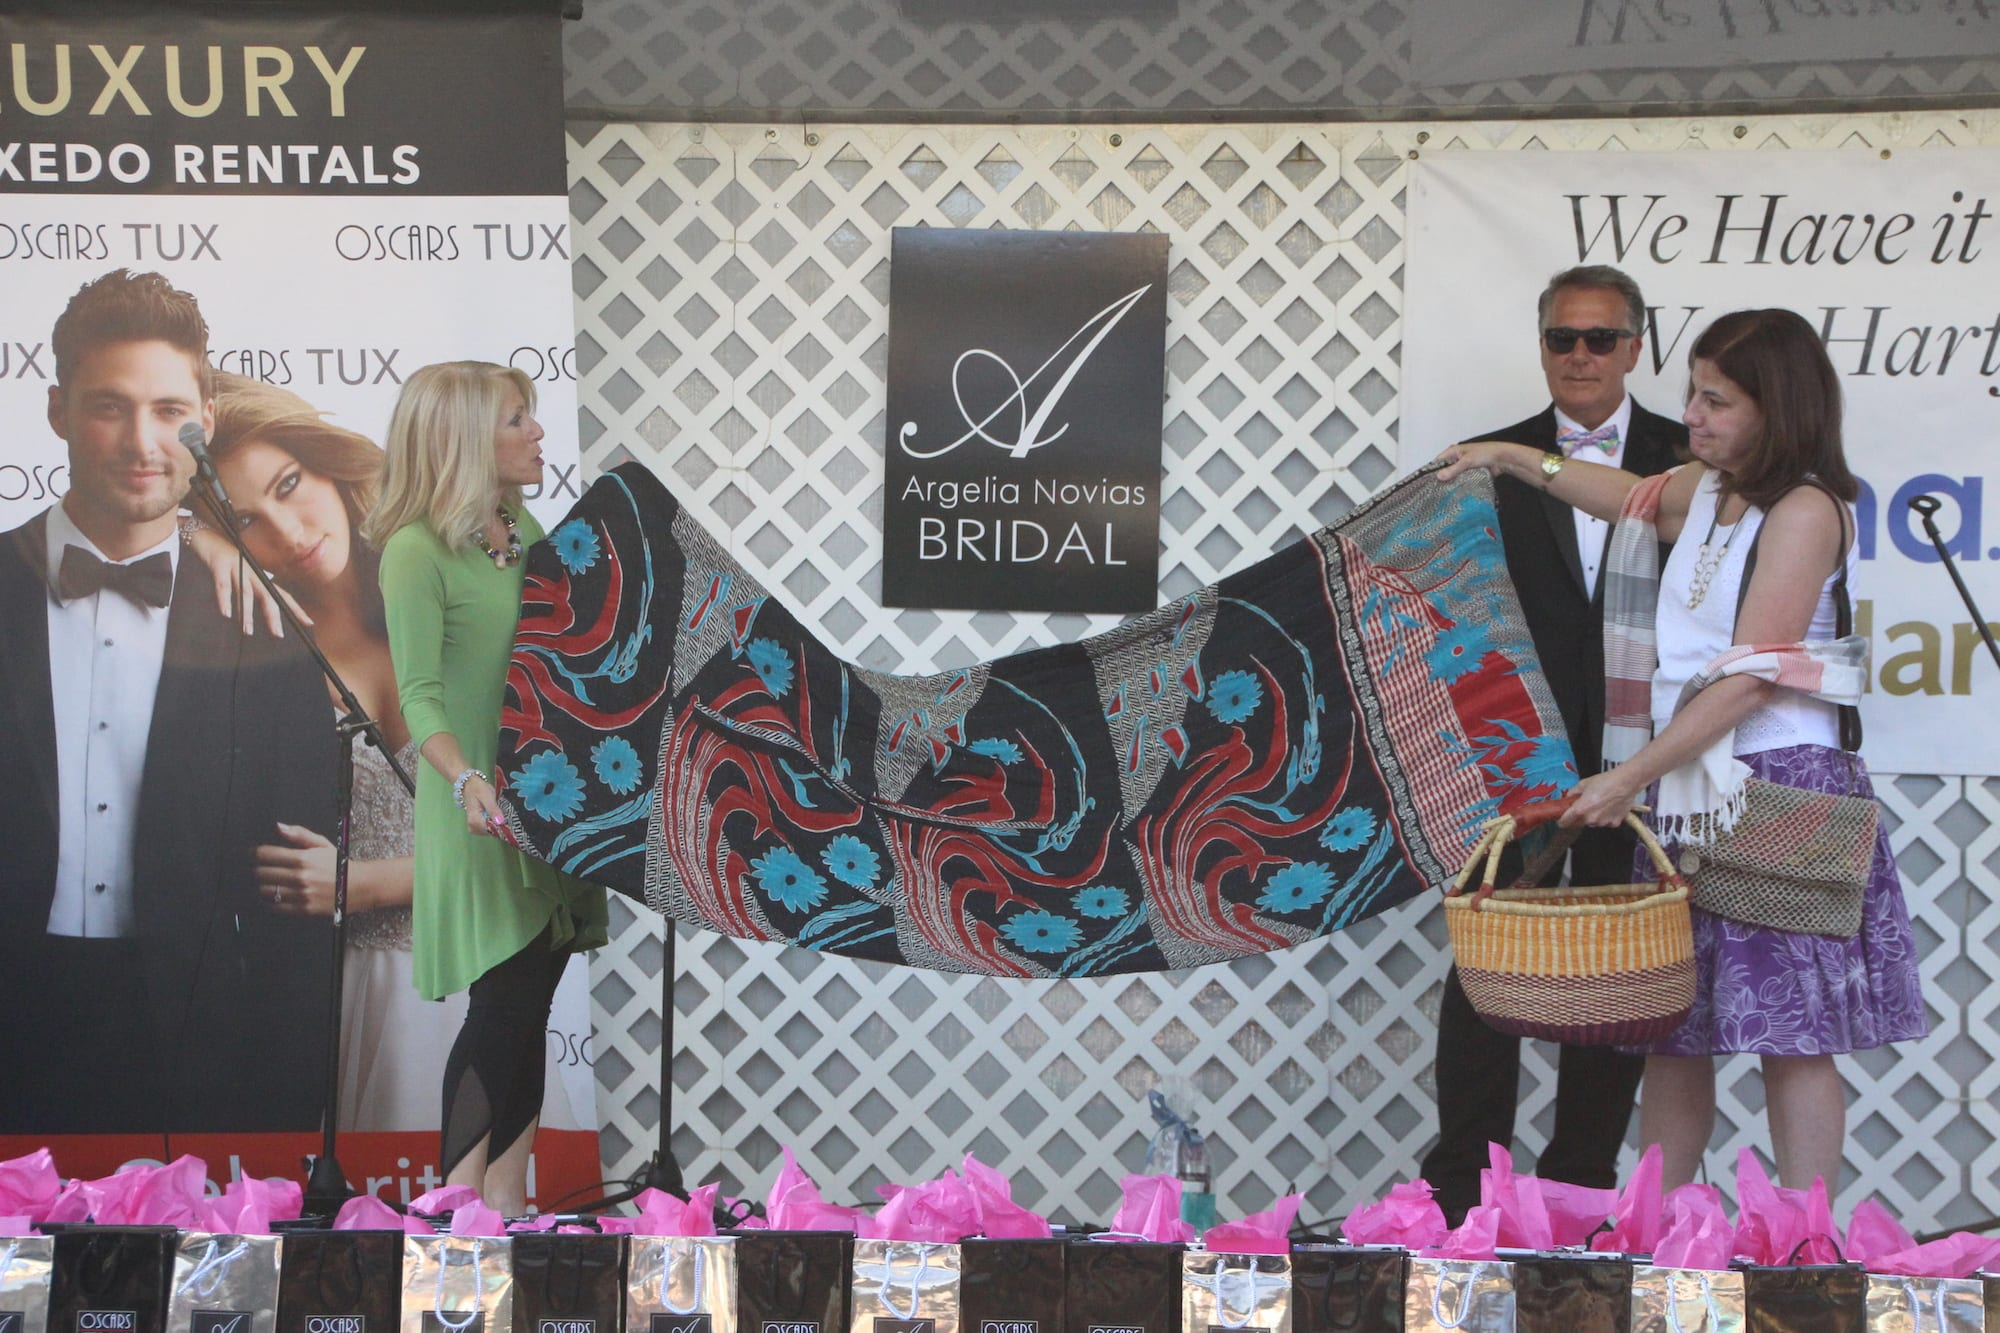 Fashion Show kicks off the Sale Days in West Hartford Center on the Town of West Hartford Showmobile stage on June 23, 2016. Featured are items from Ten Thousand Villages. Photo credit:Dylan Carneiro